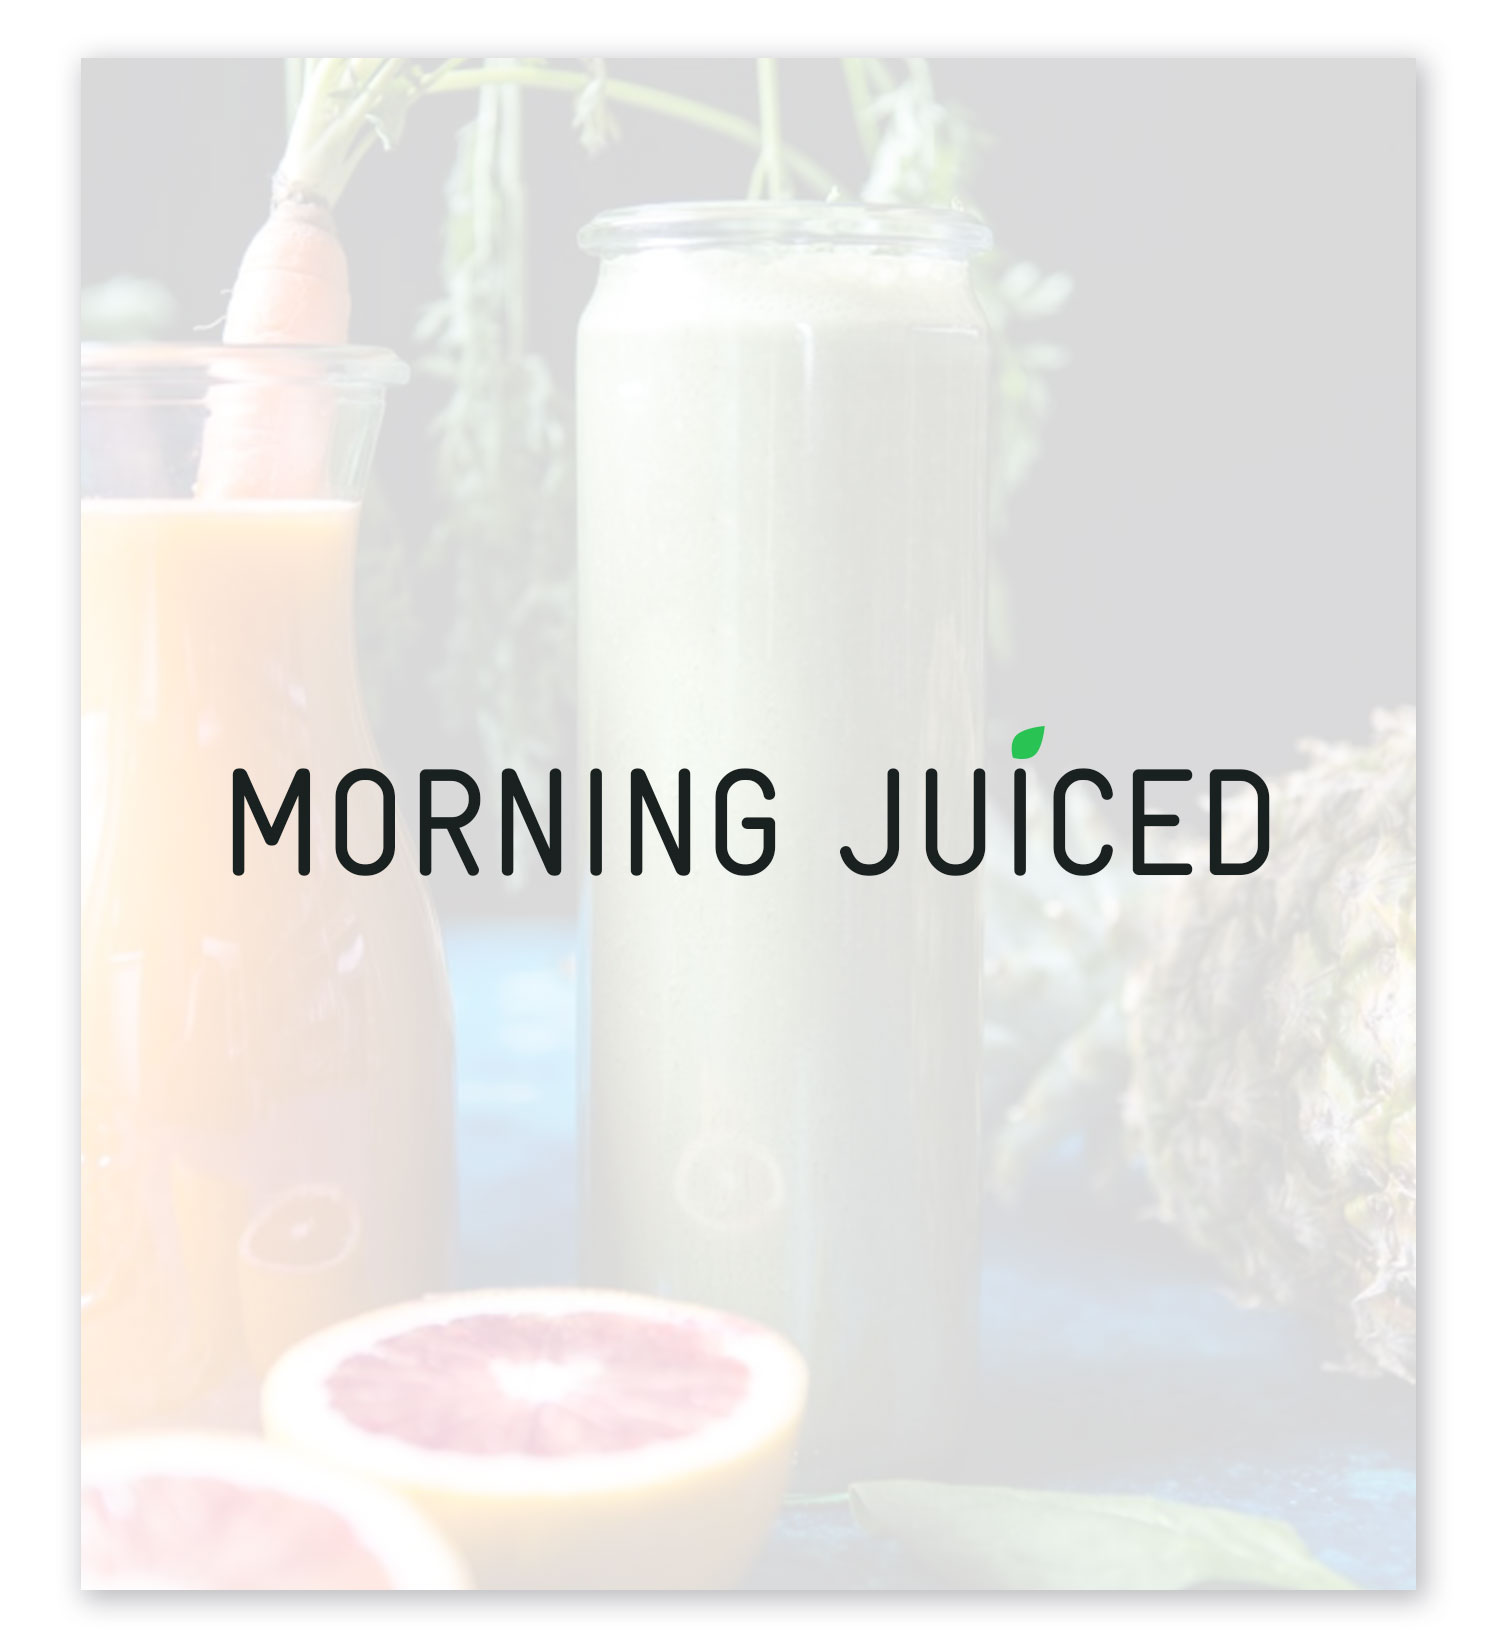 Morningjuiced-port-img